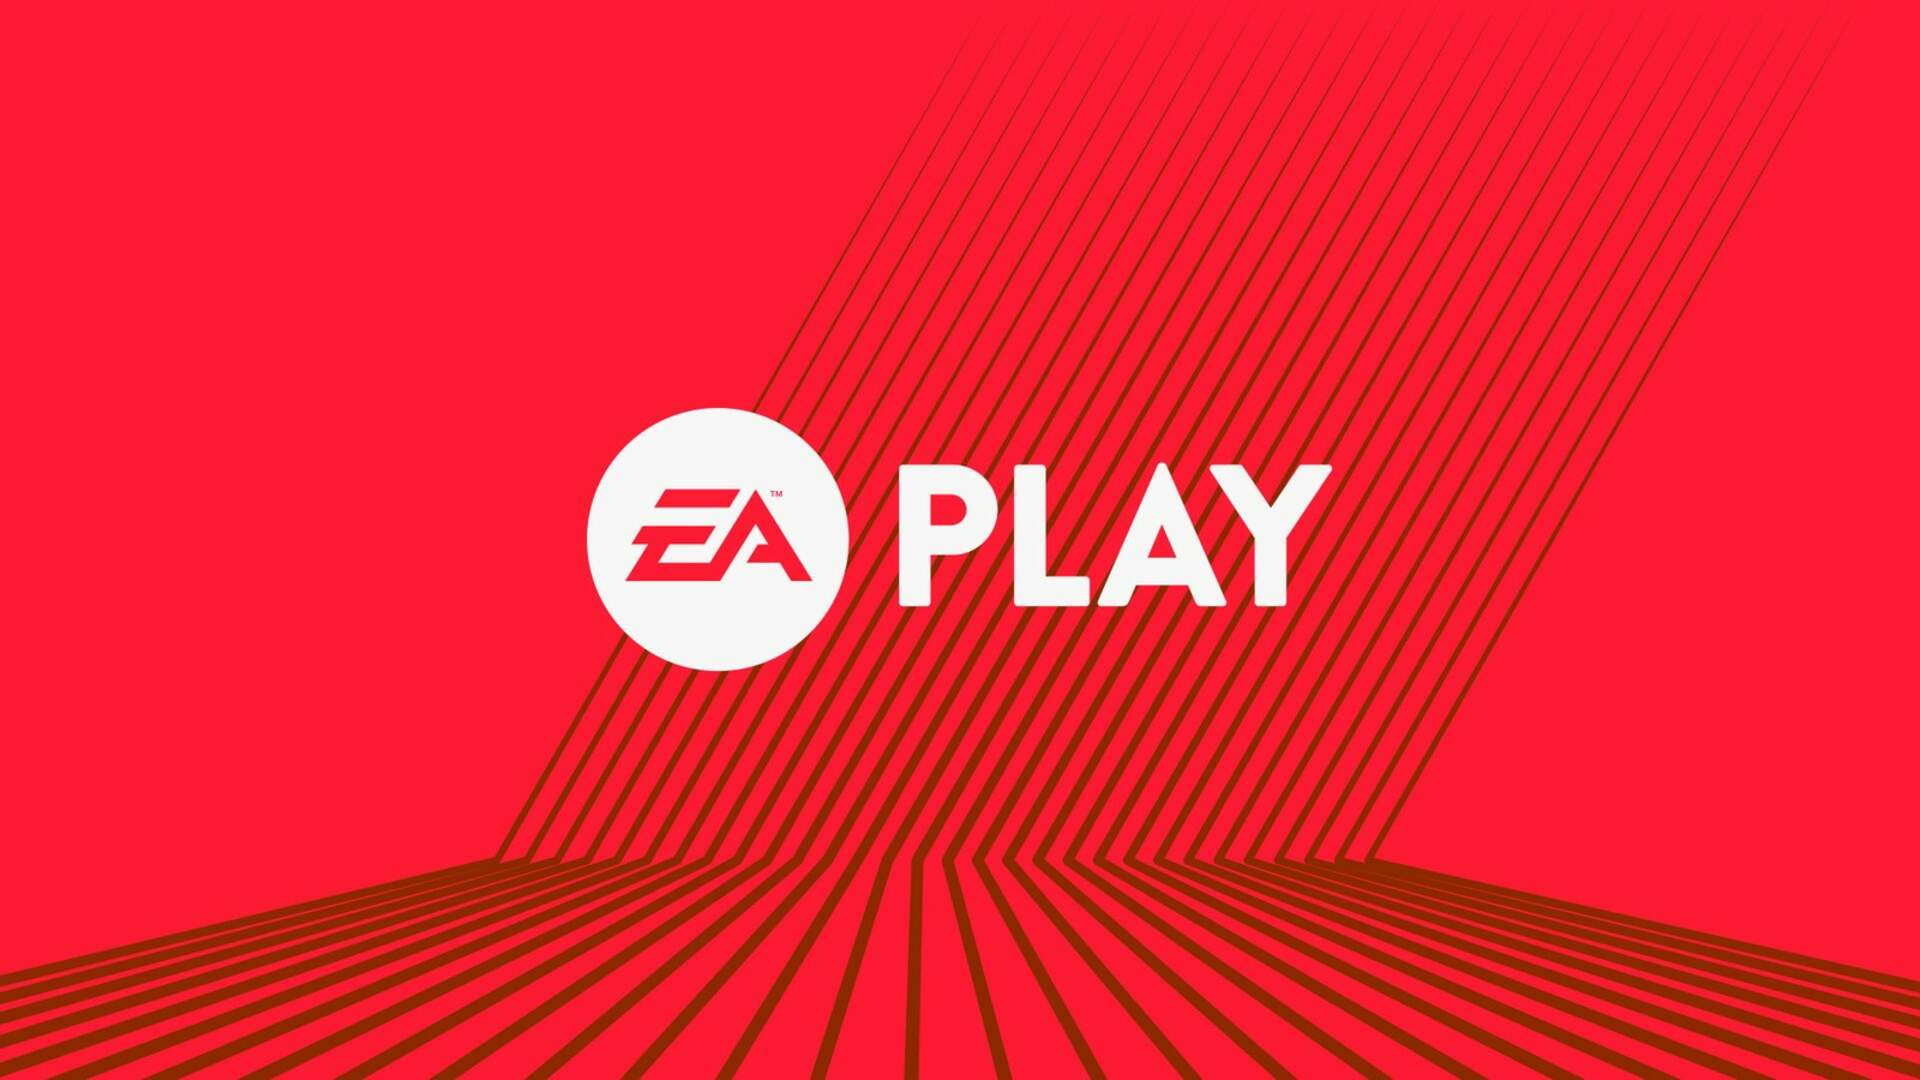 EA Play Won't Host a Press Conference at E3 Either